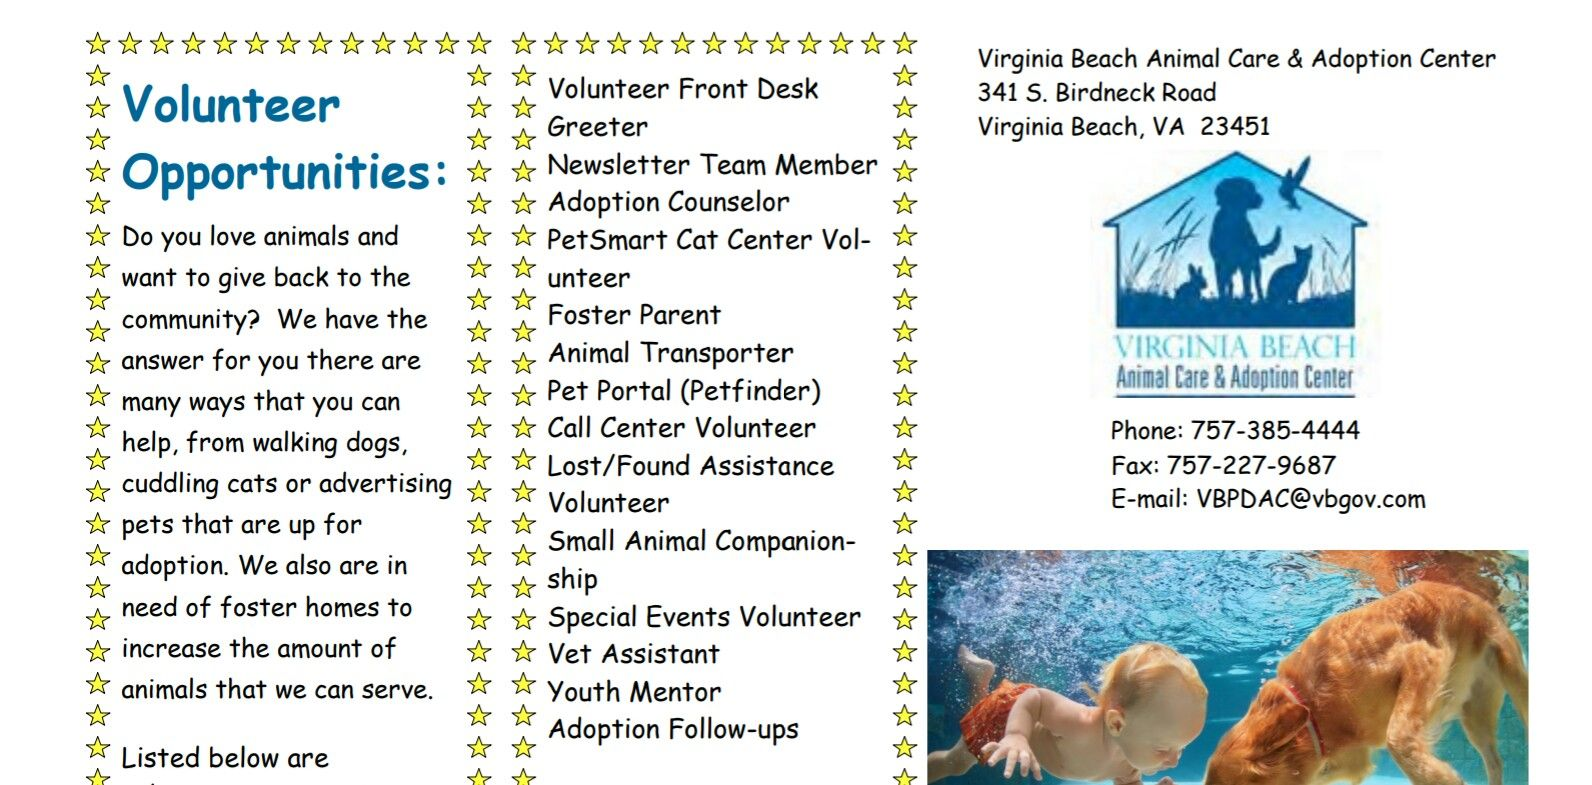 Volunteer Opportunities At The Shelter Foster Parenting The Foster Volunteer